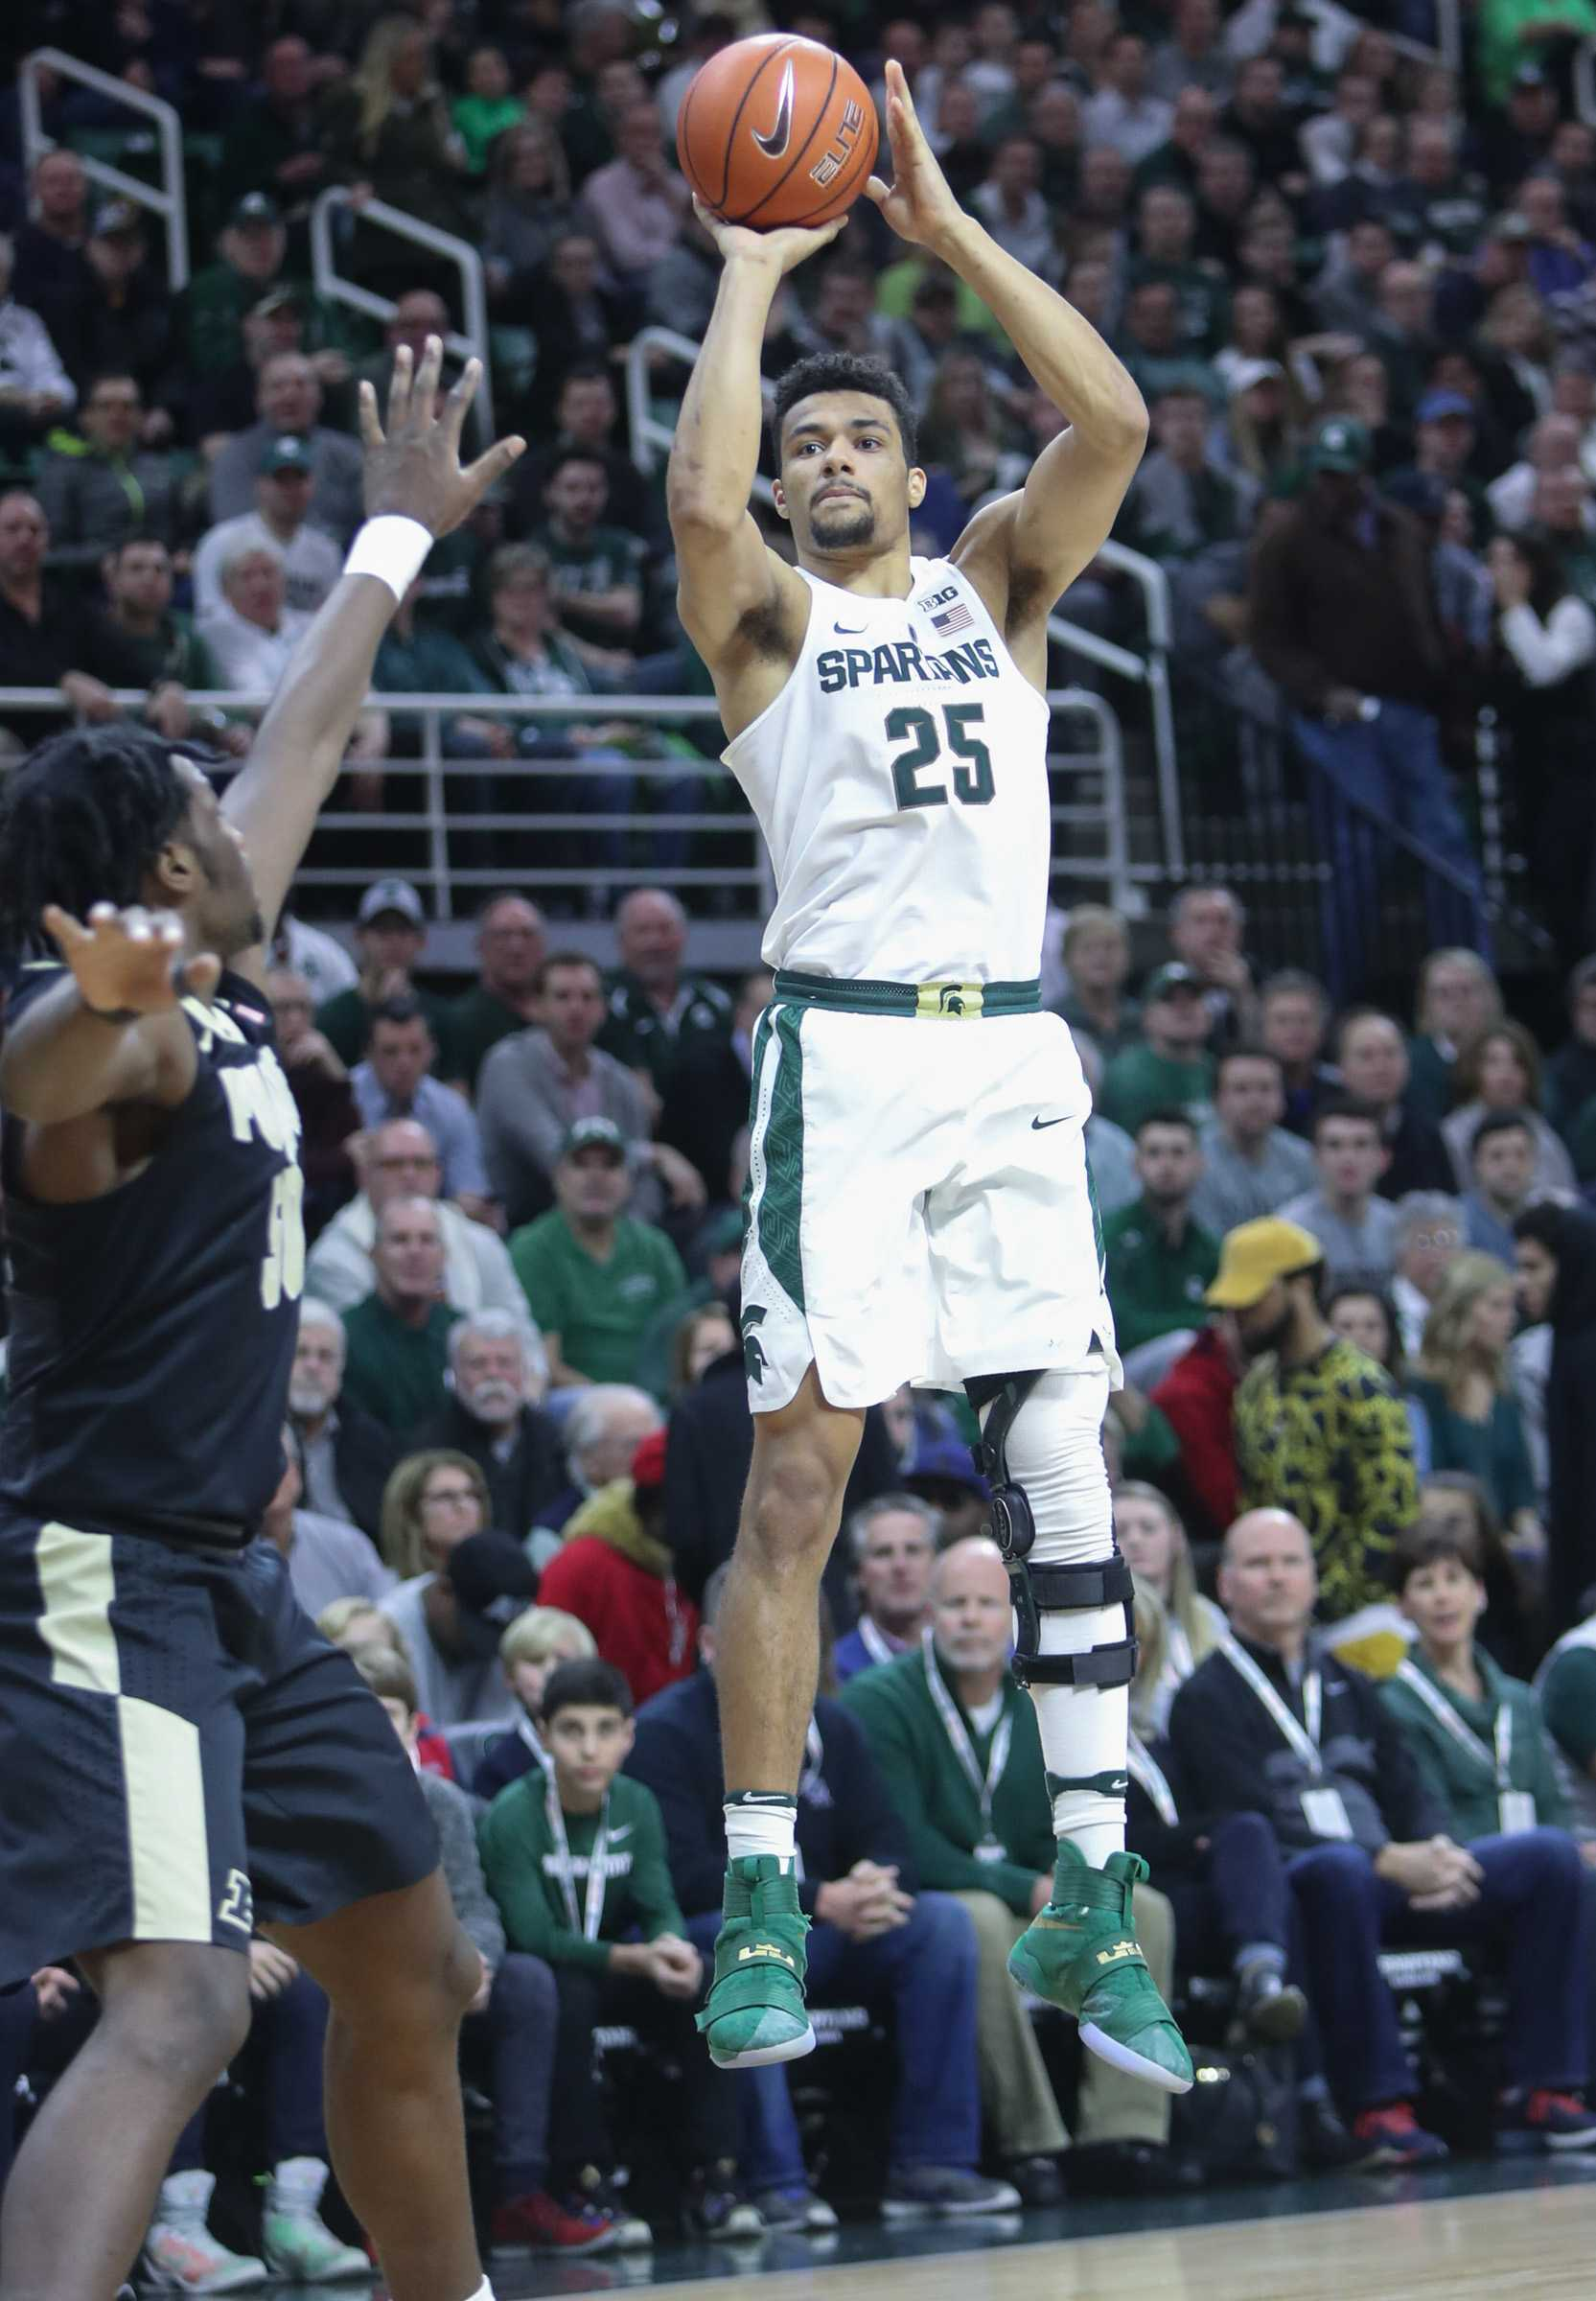 Michigan State's Kenny Goings (25) scores against Purdue's Caleb Swanigan during the first half on Tuesday, Jan. 24, 2017, at the Breslin Center in East Lansing, Mich. Purdue won, 84-73. (Kirthmon F. Dozier/Detroit Free Press/TNS)